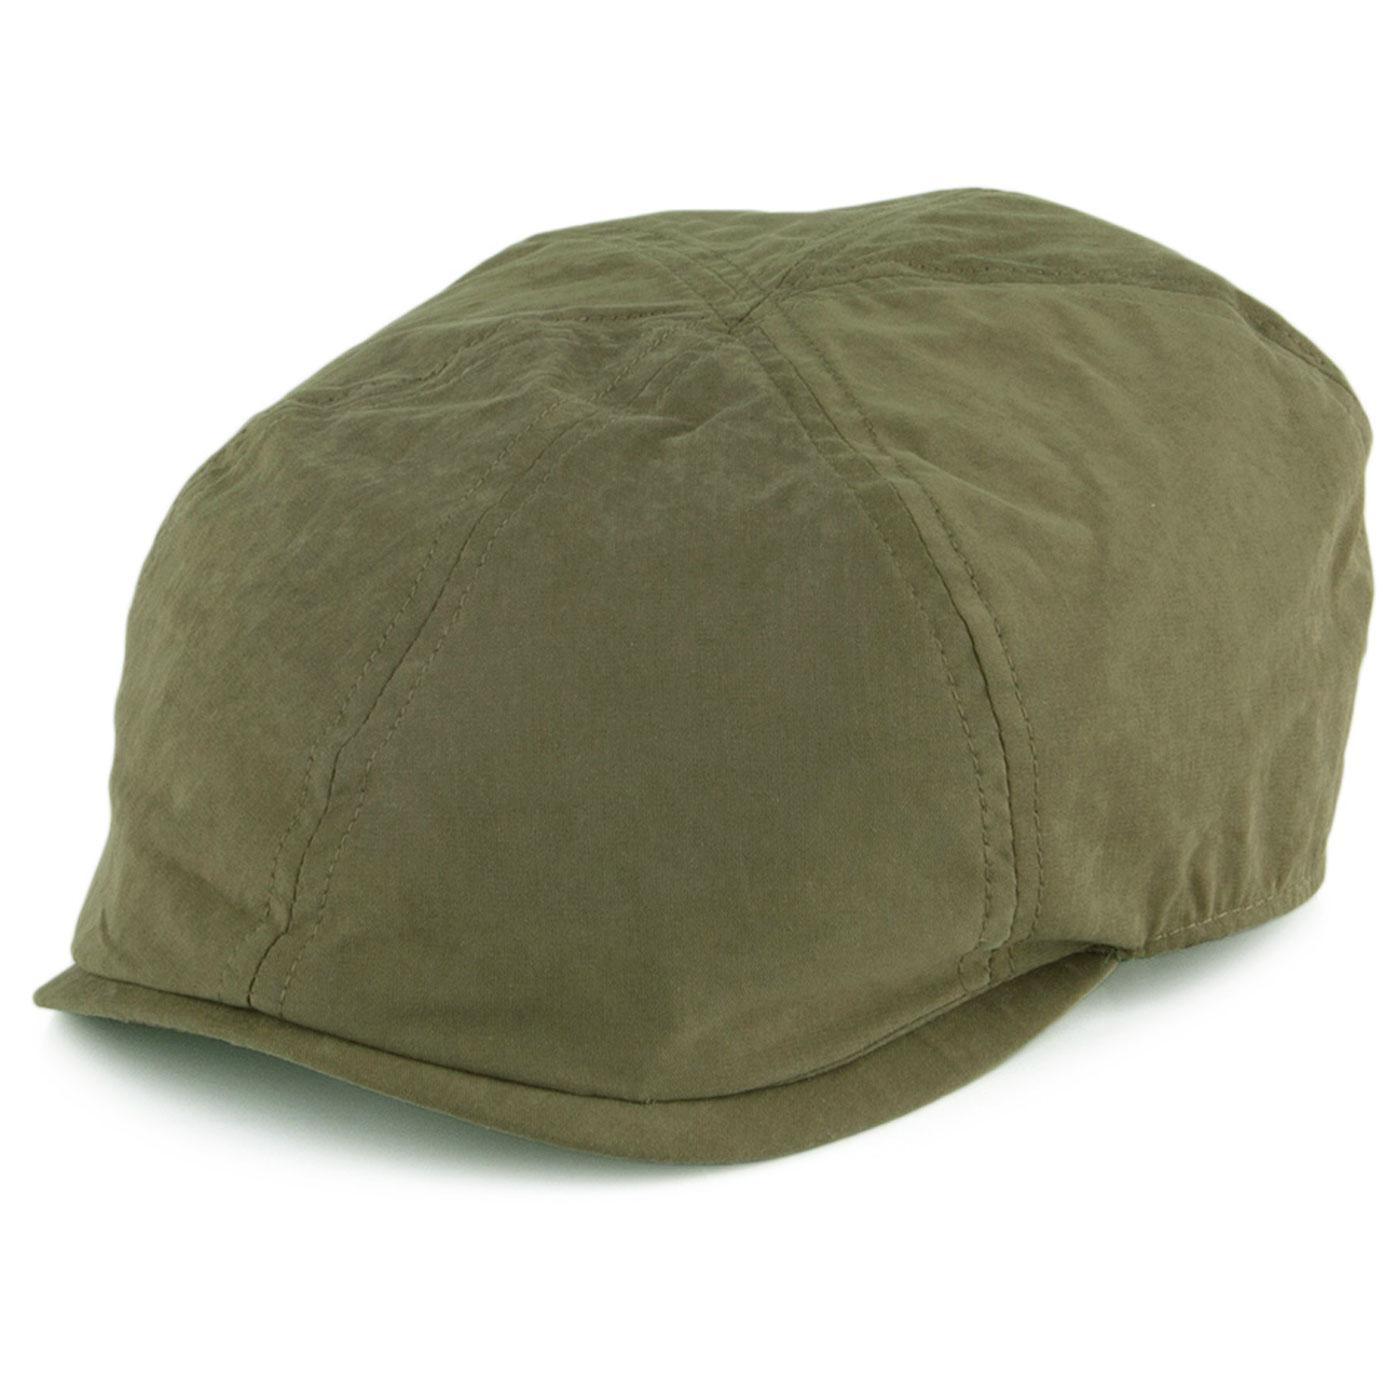 FAILSWORTH Micro 6 Panel Retro Newsboy Cap (Olive)